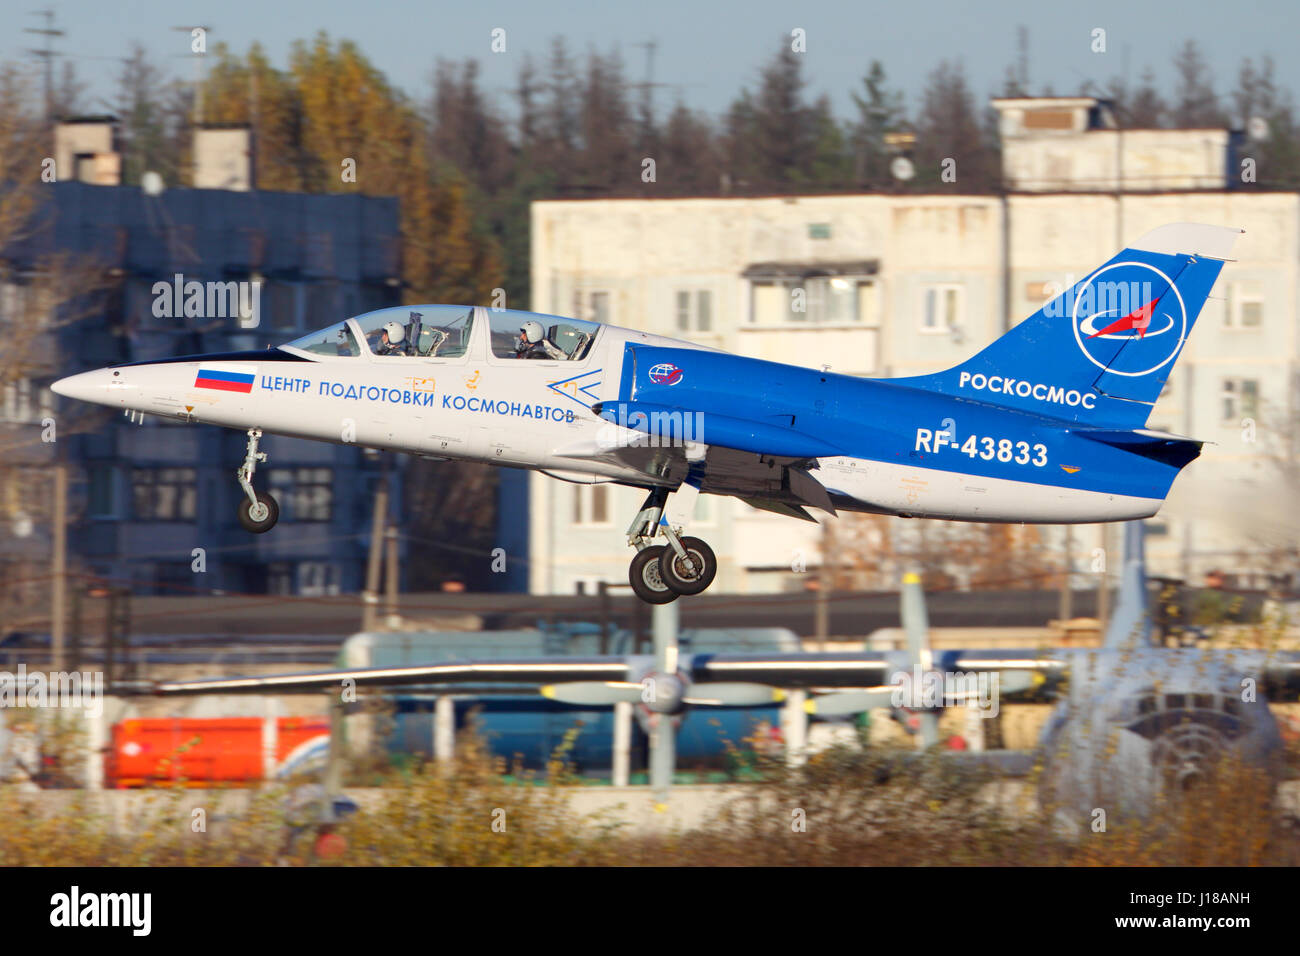 CHKALOVSKY, MOSCOW REGION, RUSSIA - OCTOBER 26, 2013: Aero L-39C Albatros of Roscosmos taking off at Chkalovsky. - Stock Image